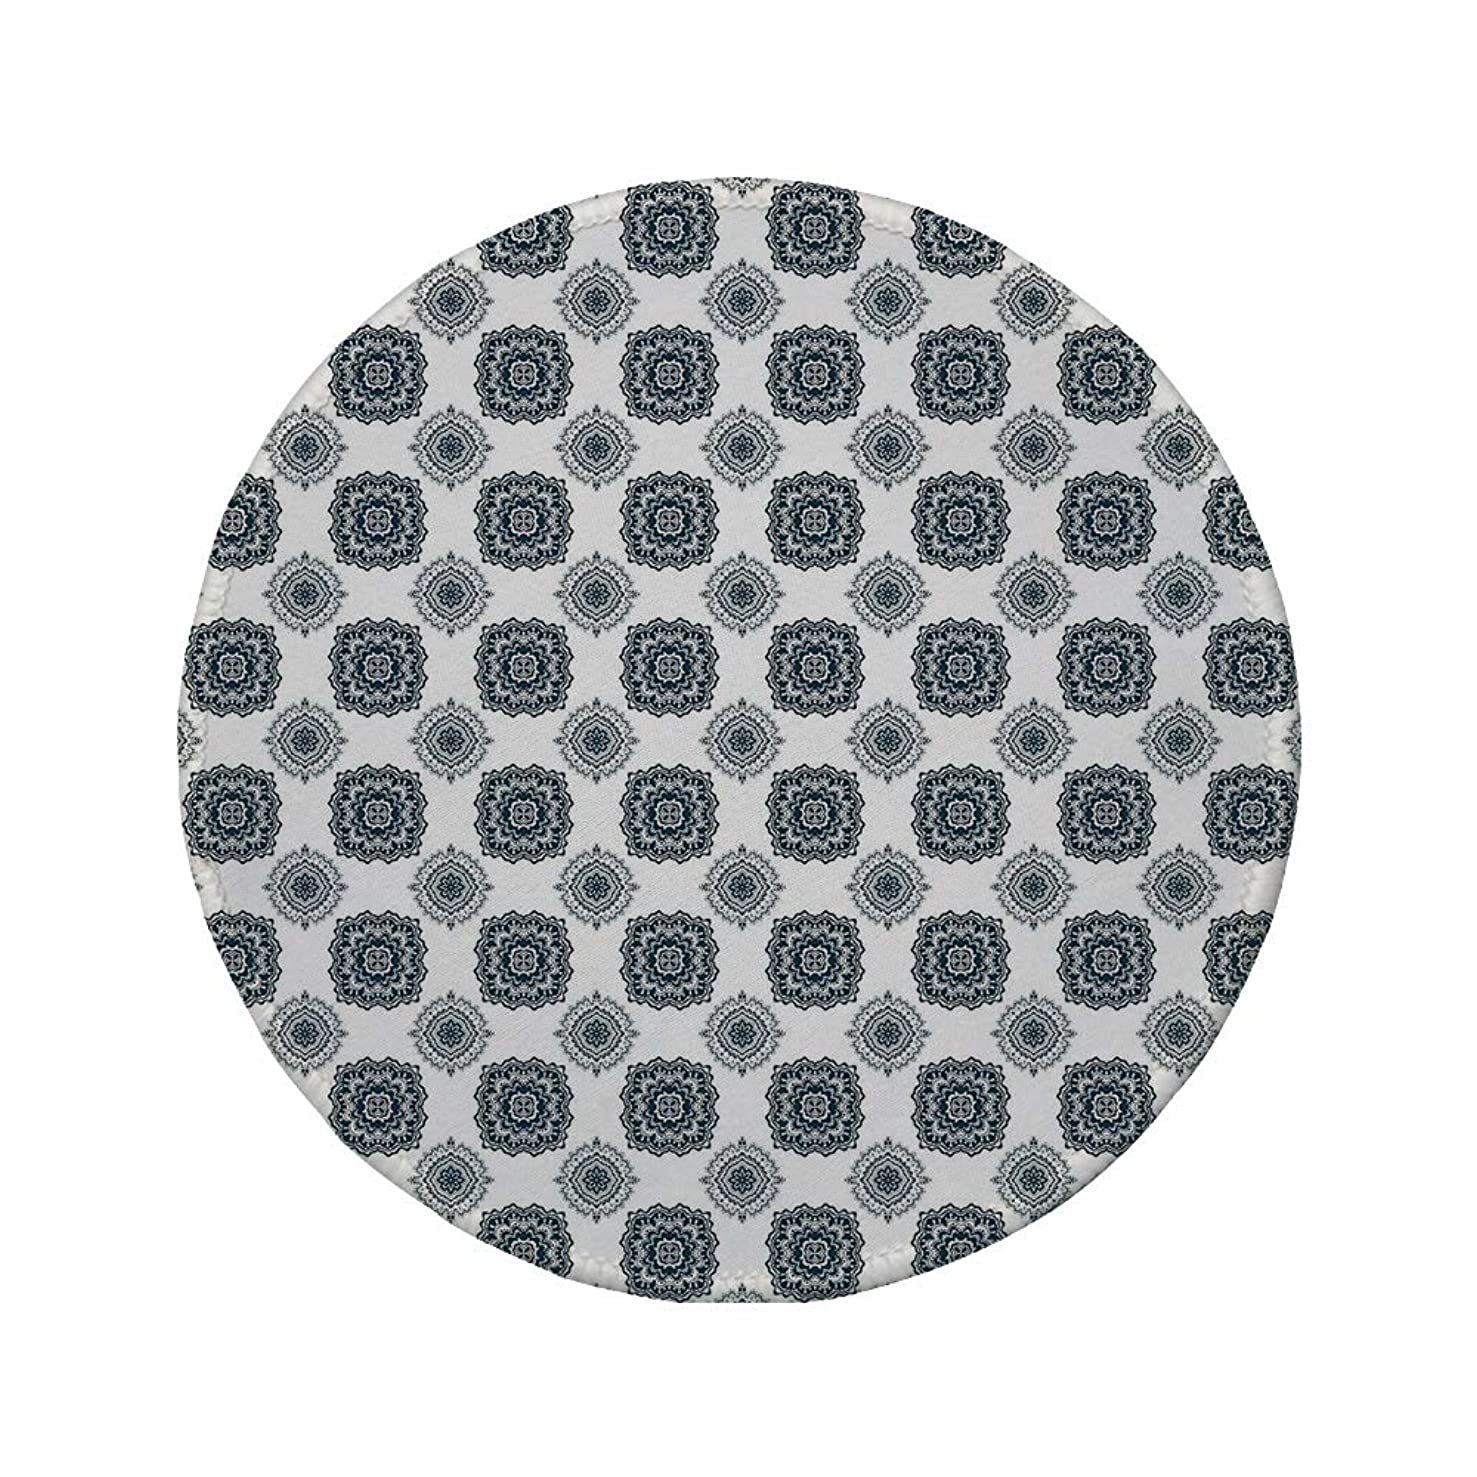 Non-Slip Rubber Round Mouse Pad,Geometric,Symmetrical Geometric Design Flora Pattern Abstract Nature Imagery Pale Tones Decorative,Indigo White,11.8